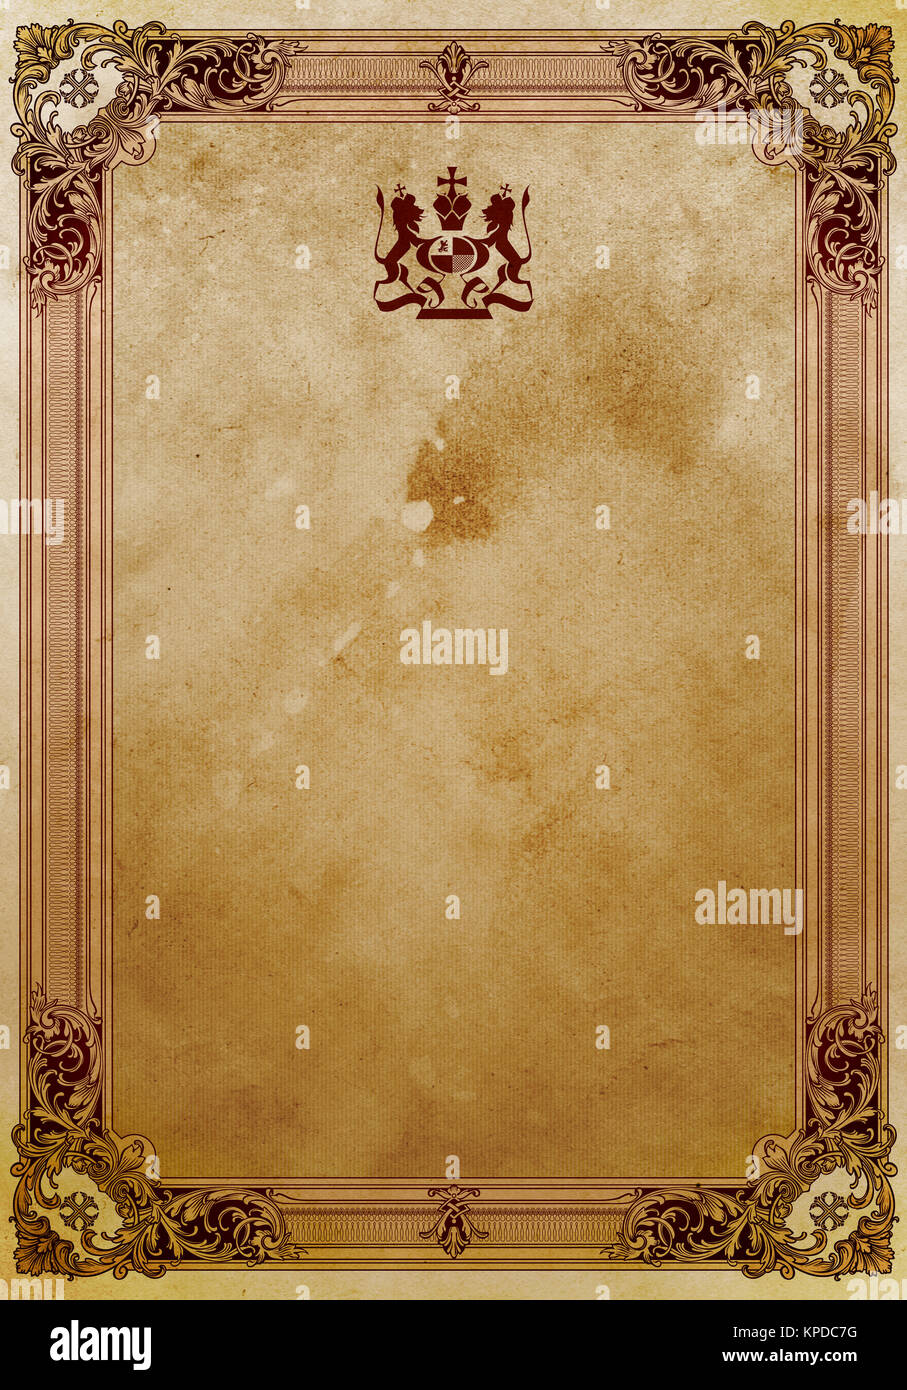 old grunge paper background with decorative vintage border stock